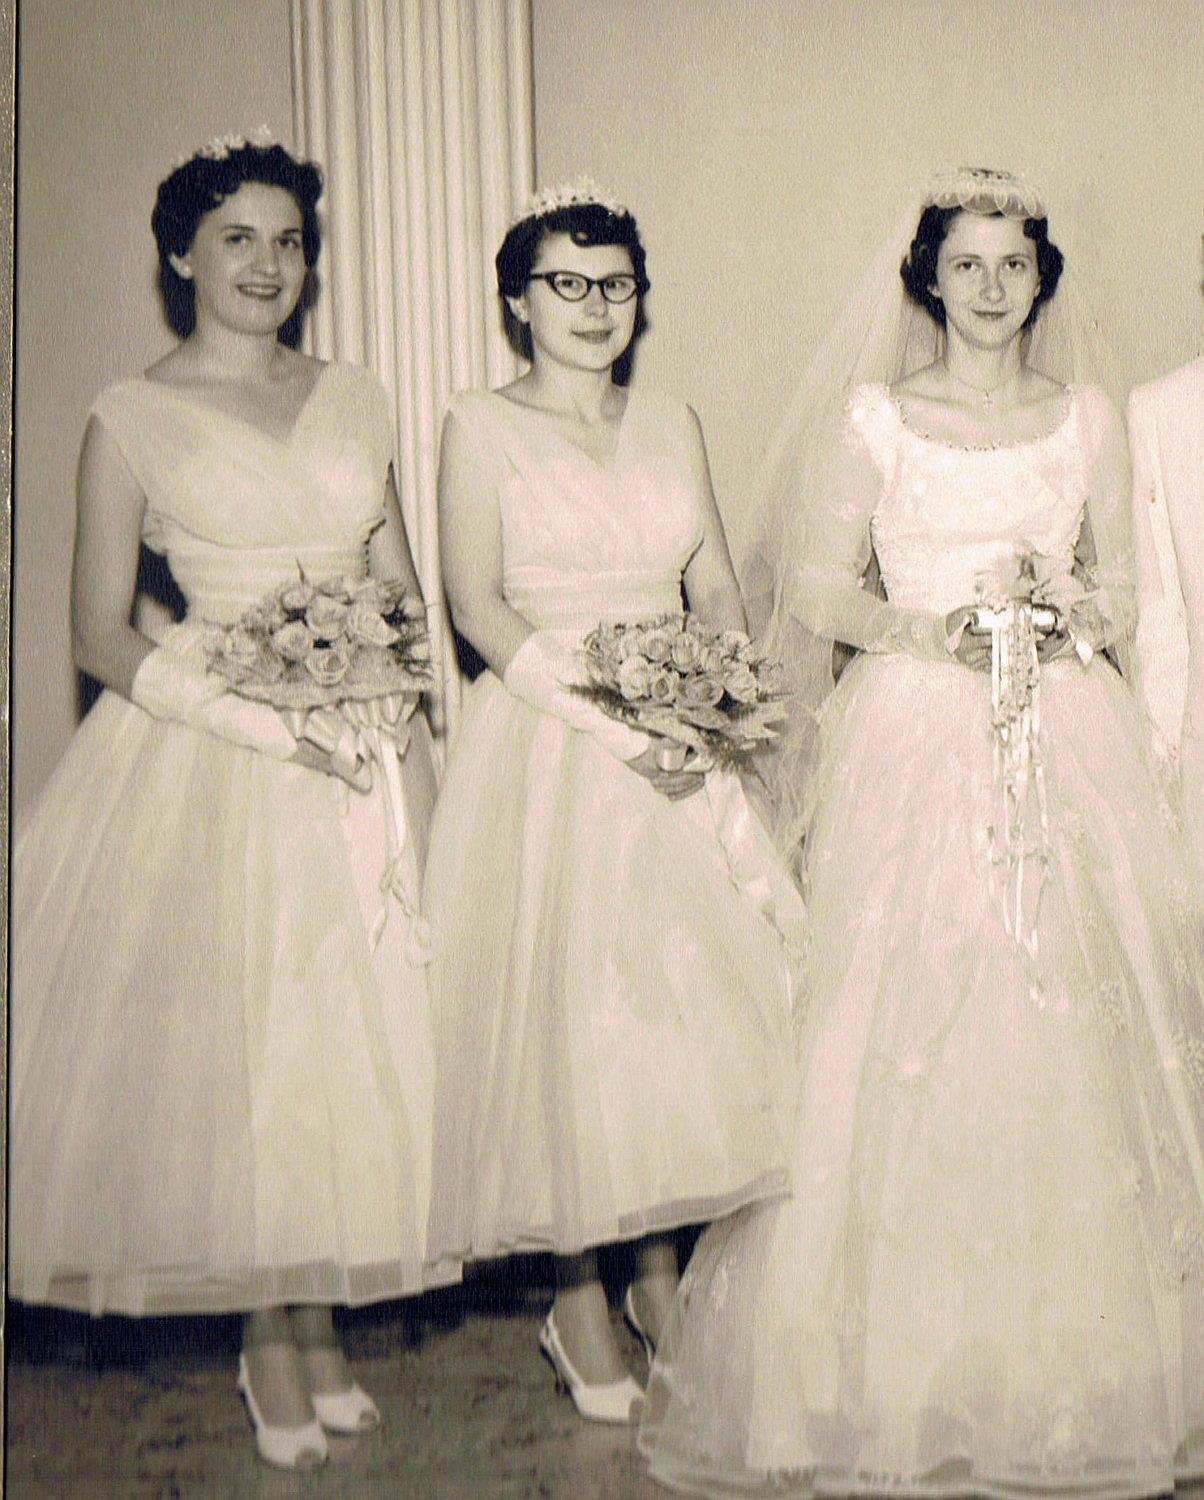 1950s Wedding: Vintage 1950s Wedding Photograph Portrait Of Bridal Party From